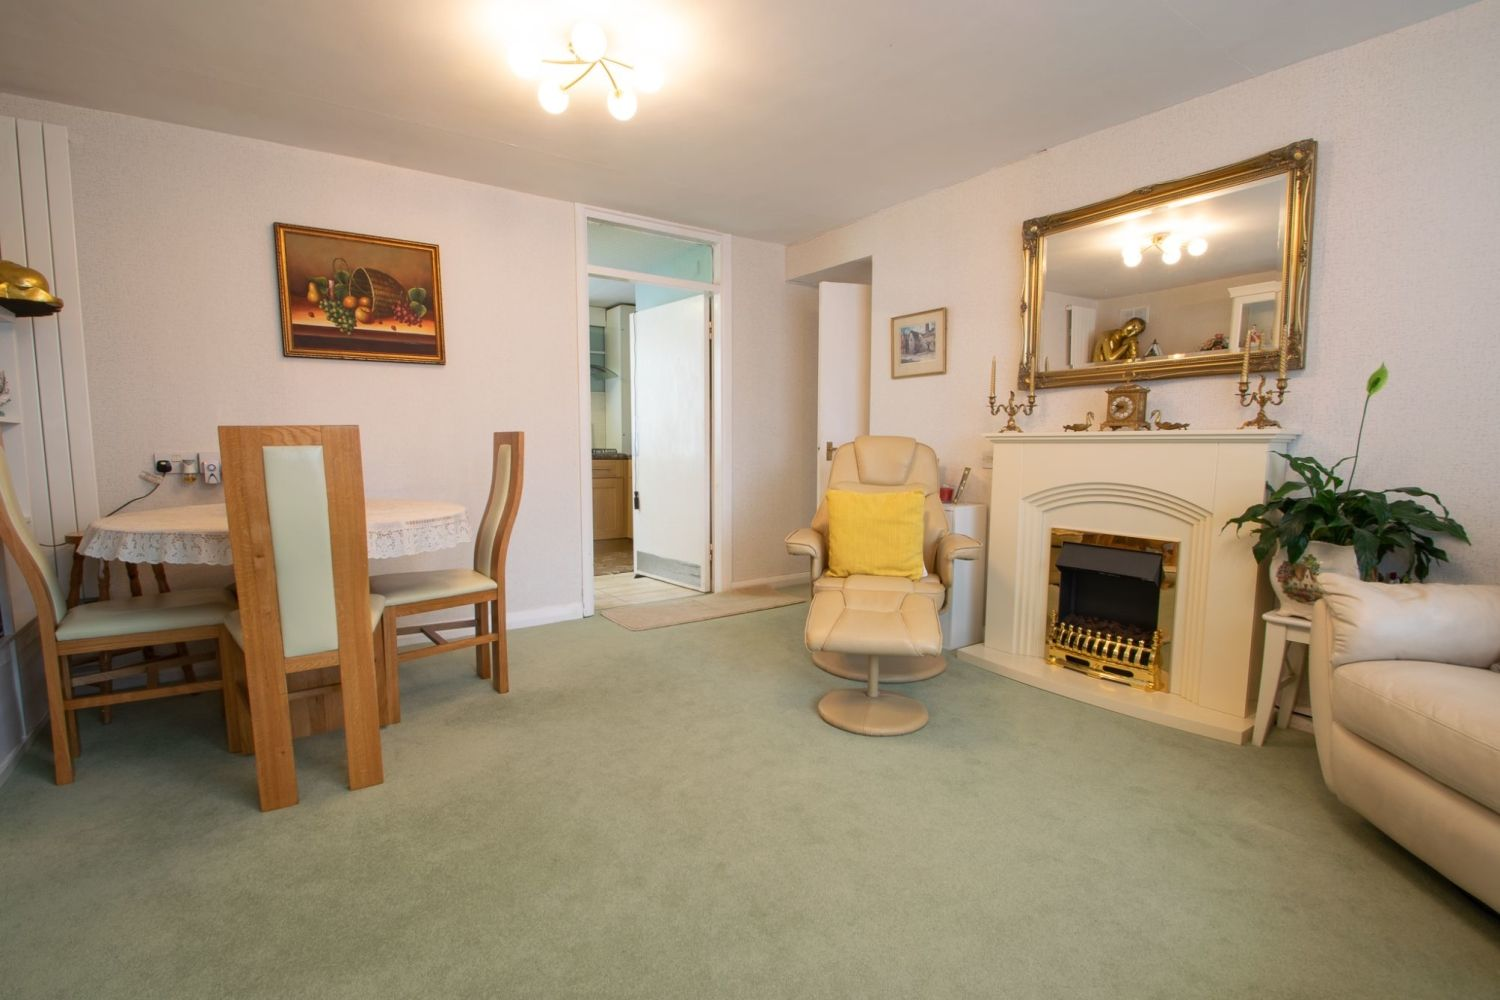 2 bed flat for sale in Enville Street, Stourbridge Central 3